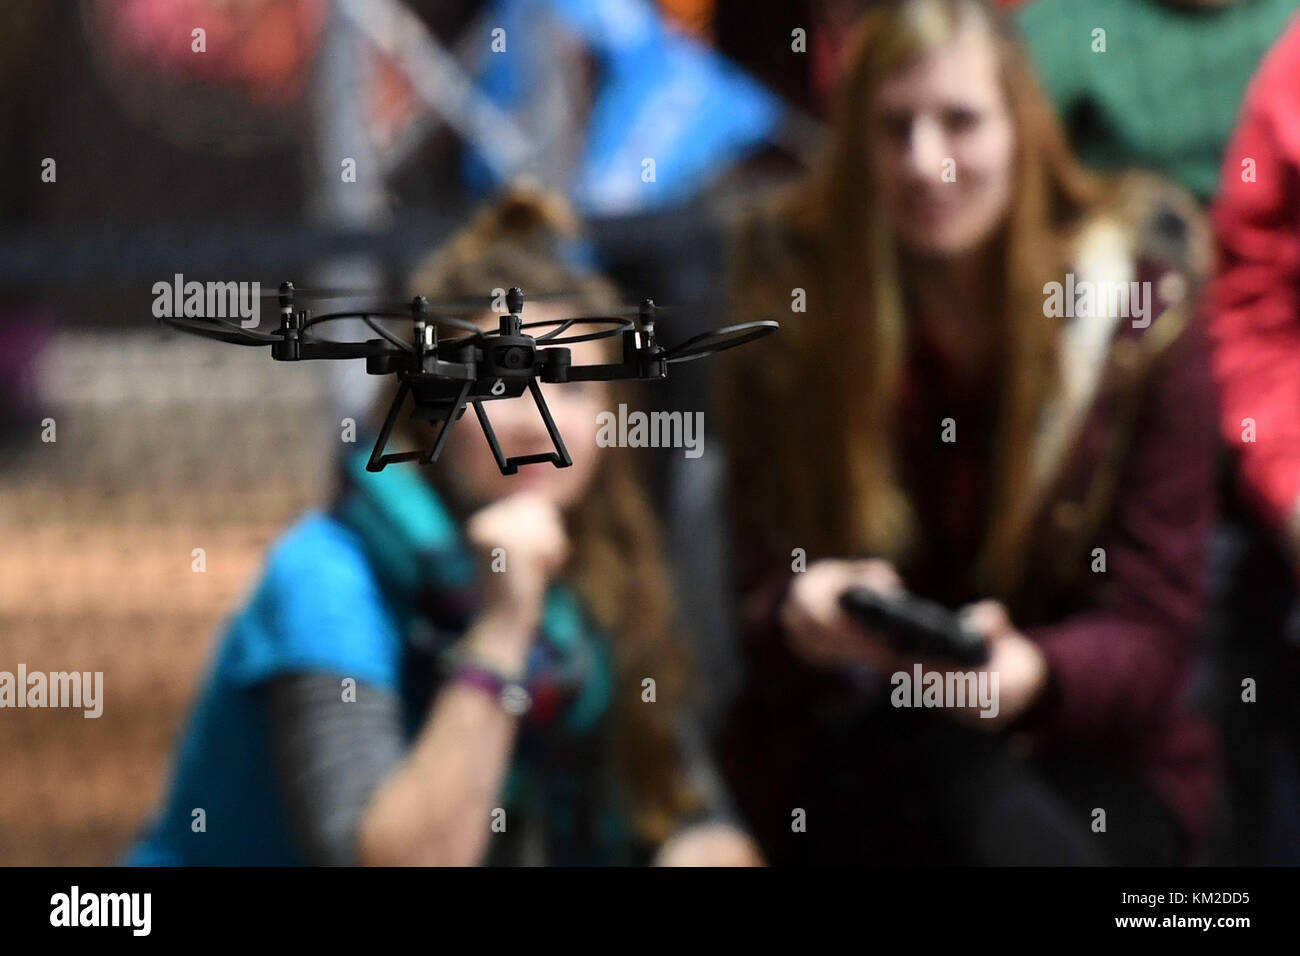 Berlin, Germany. 02nd Dec, 2017. Visitors trying out a drone during the Drone Champions League (DCL) in Berlin, - Stock Image